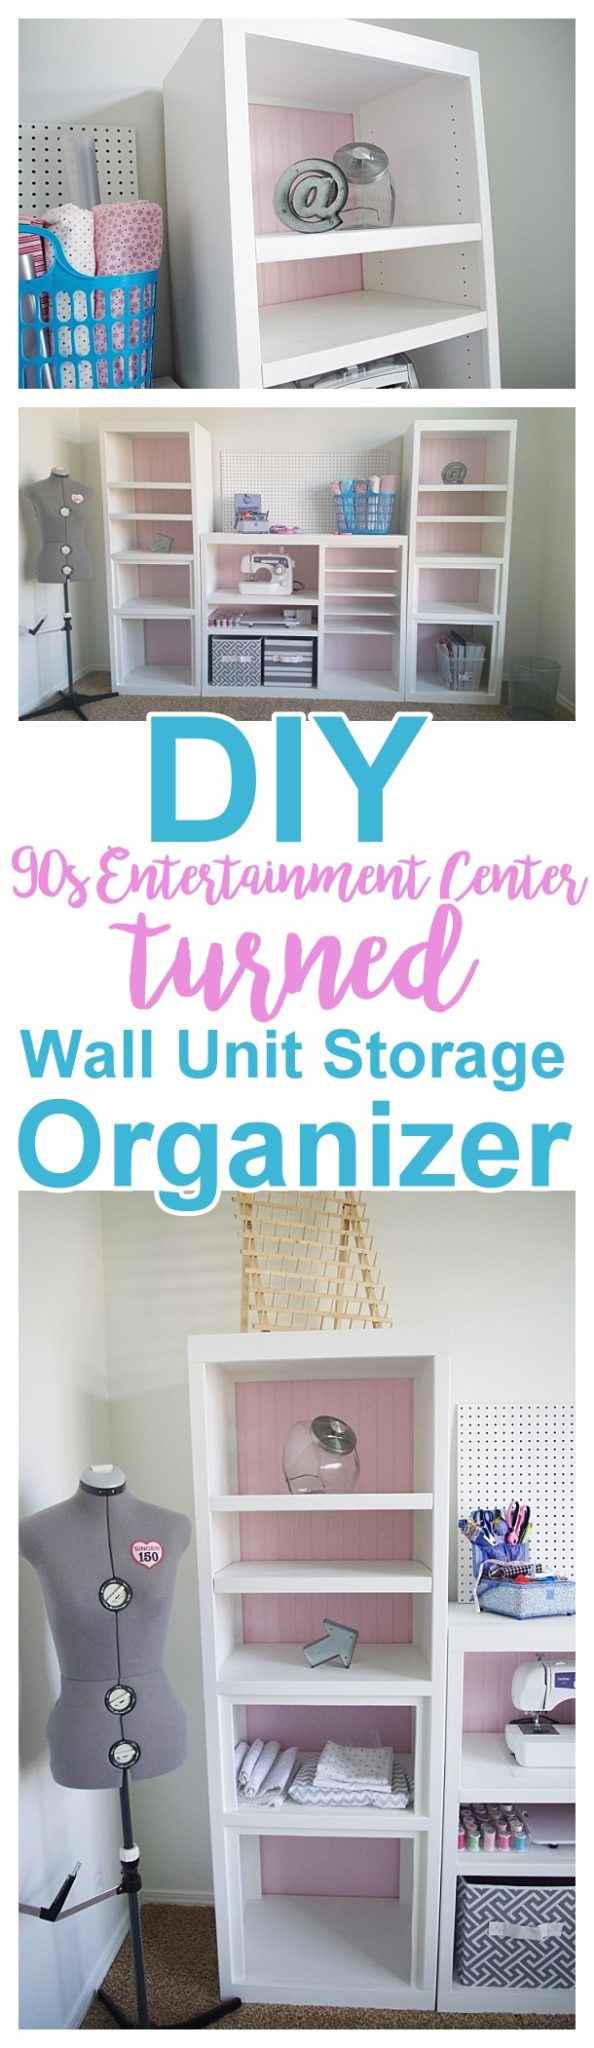 DIY 90s {Ugly!} Entertainment Center Makeover - PRETTY Craft Storage Organizer Wall Unit Makeover Do it Yourself Project Tutorial Furniture Makeover